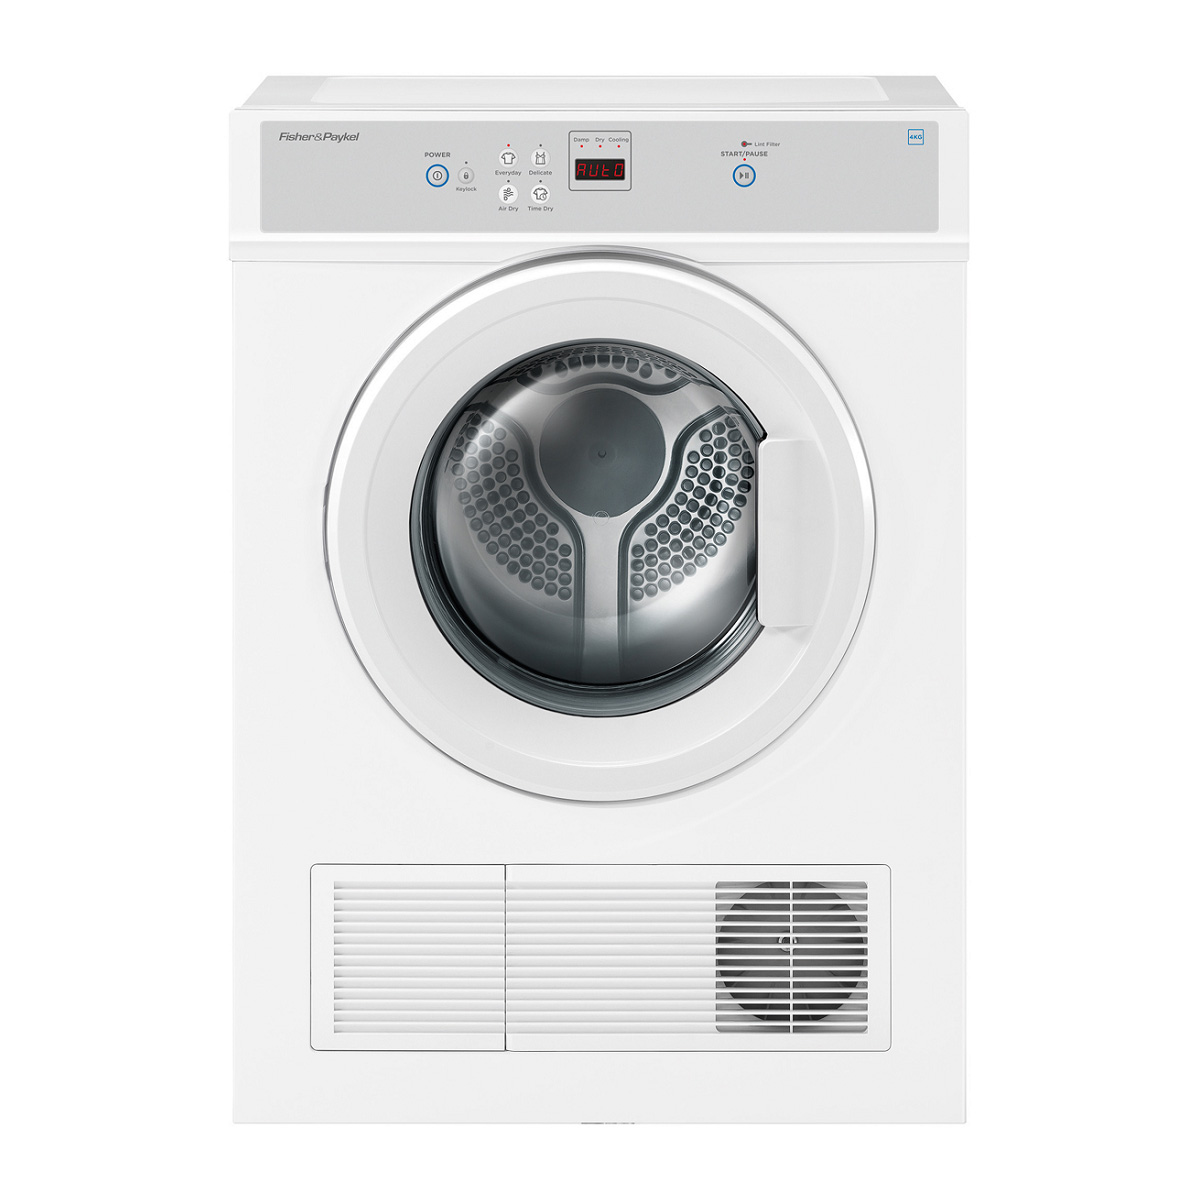 Fisher & Paykel Tumble Dryer DE4060M1